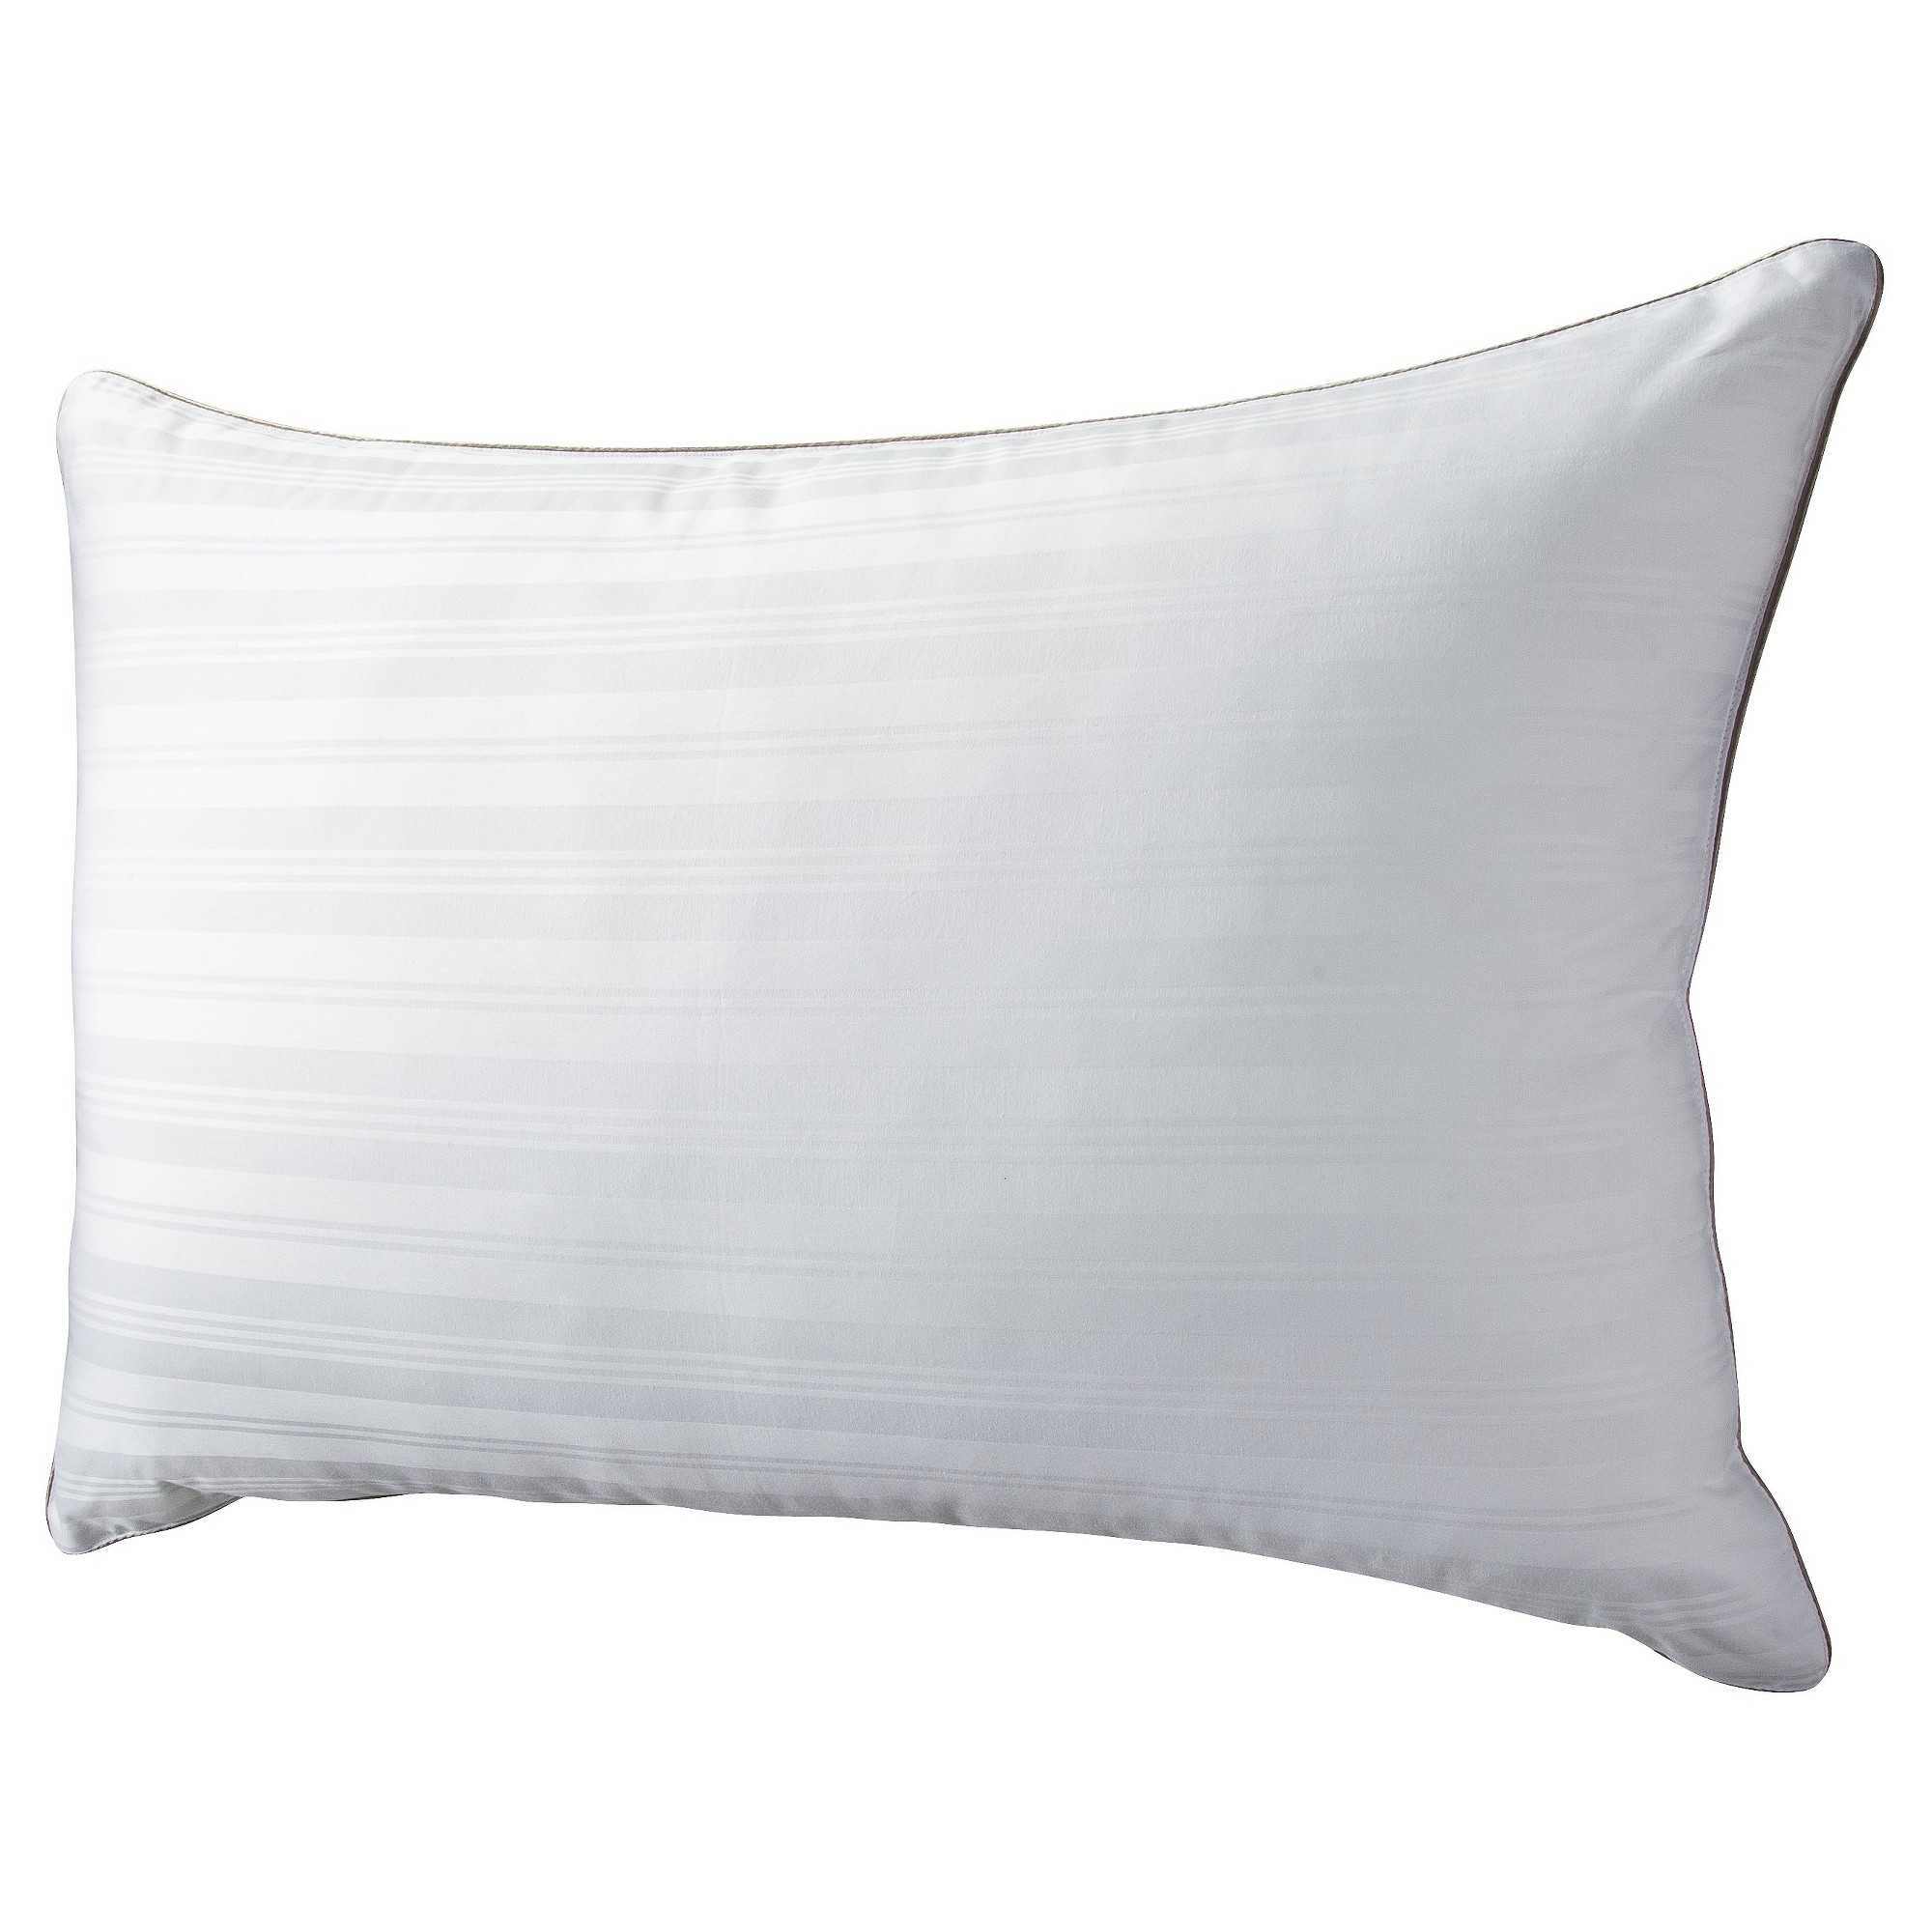 clearance sanctuary onceit fill pillow mega down gram alternative sheraton products